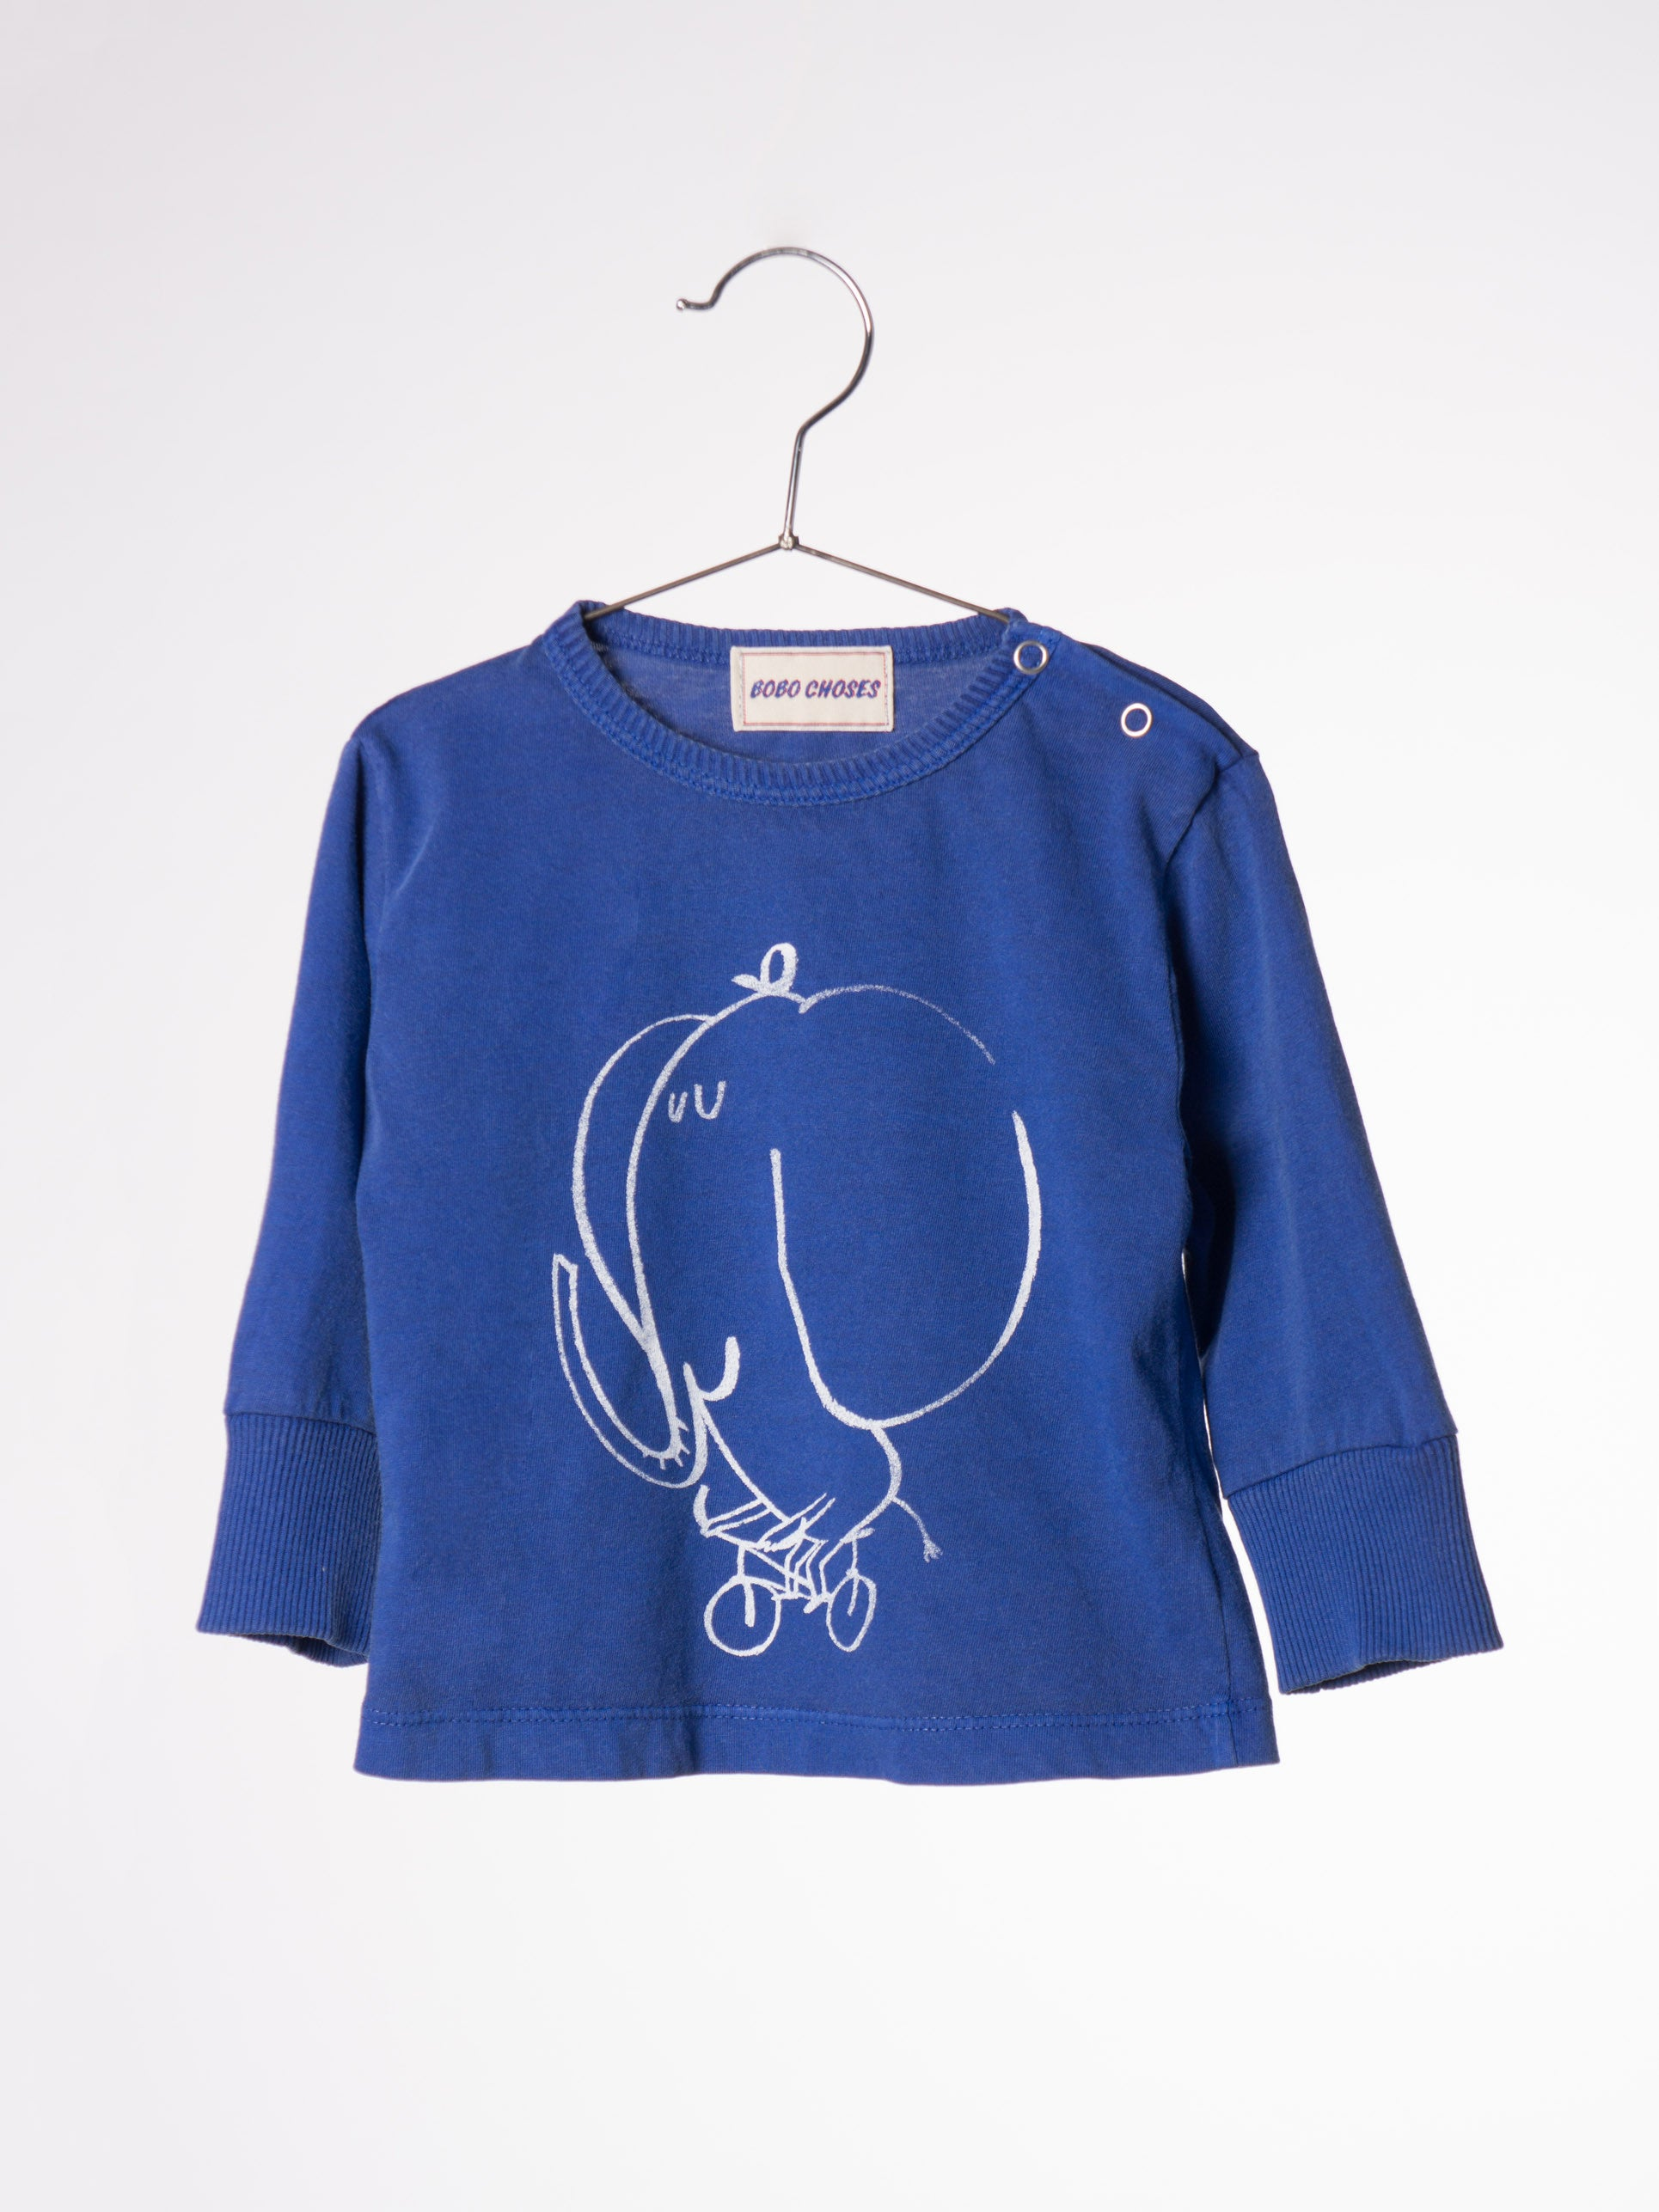 Bobo Choses The Cyclist L/S Baby T-shirt - Ladida